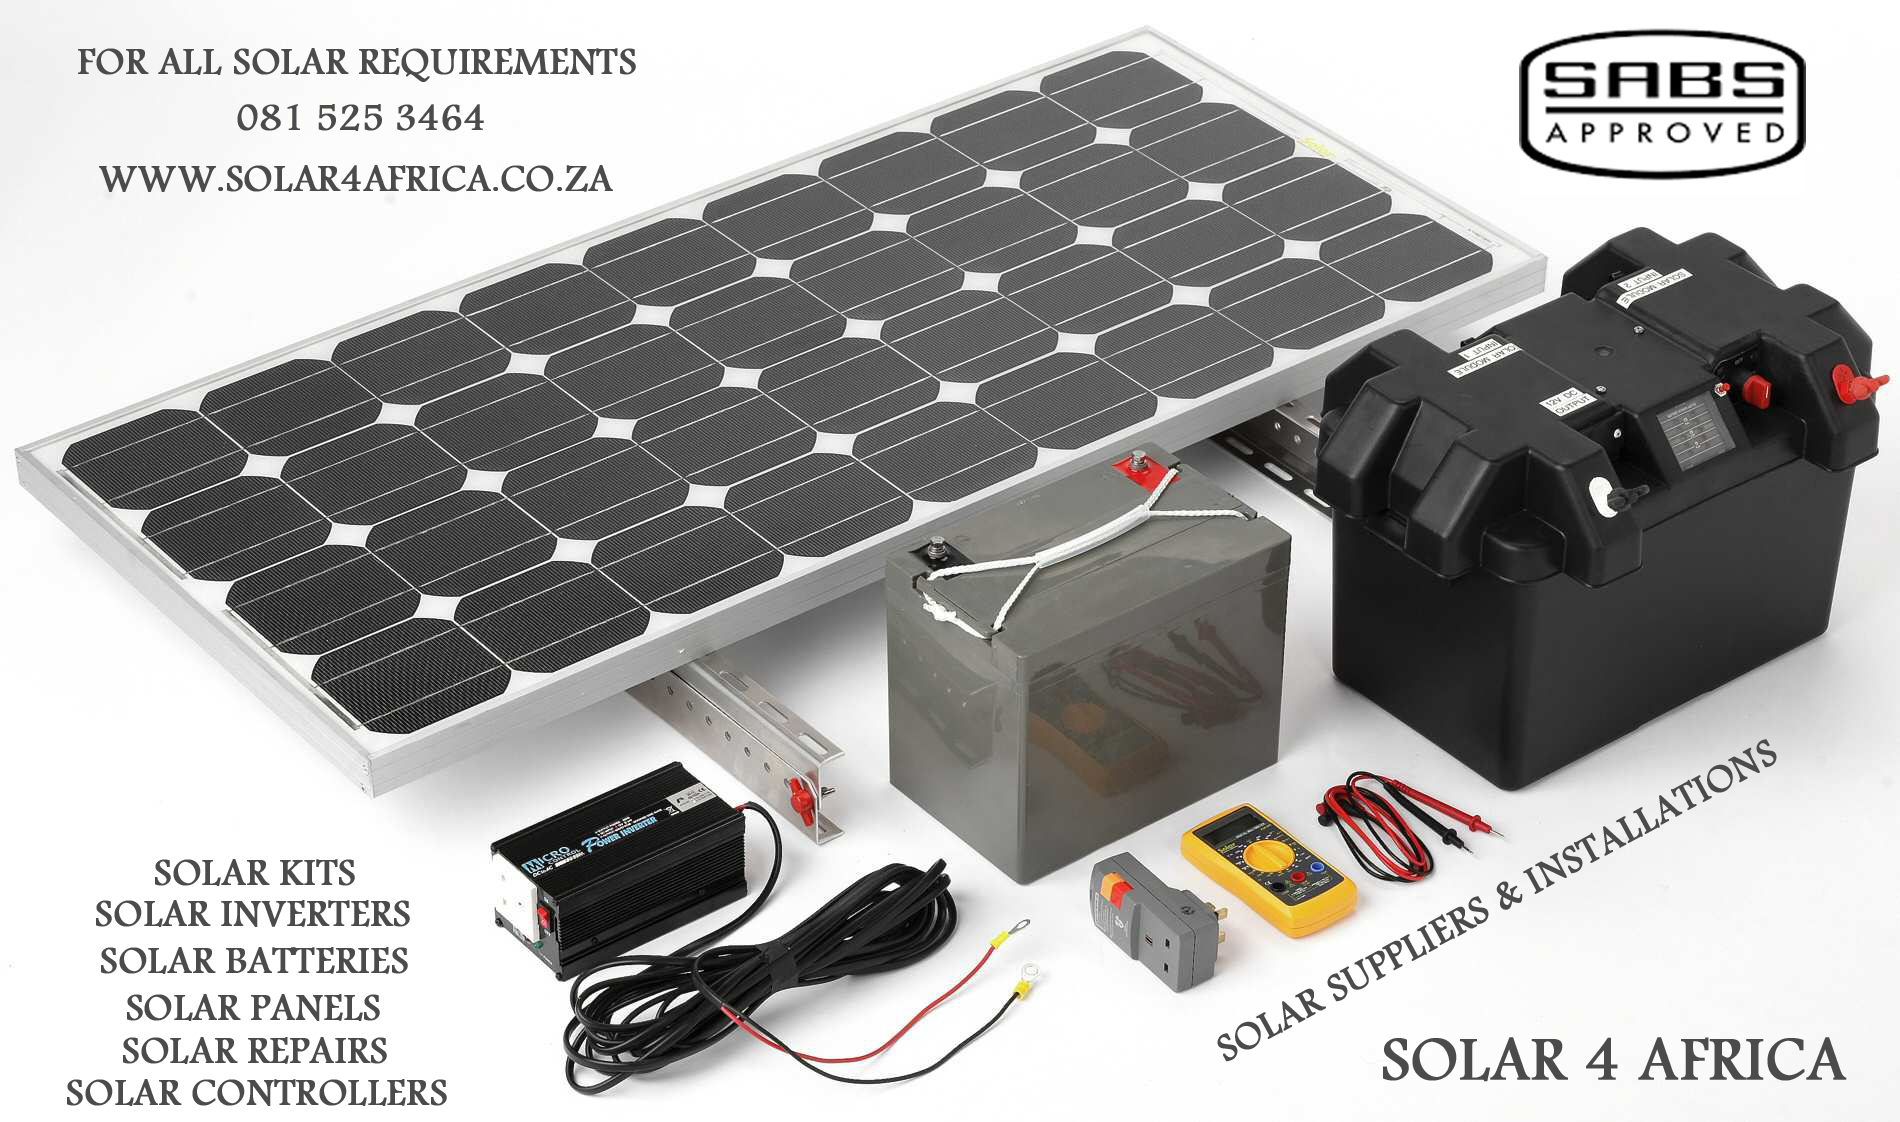 Solar 4 Africa 081 525 3464 Solar Power For Home Amp Business Use In South Africa High